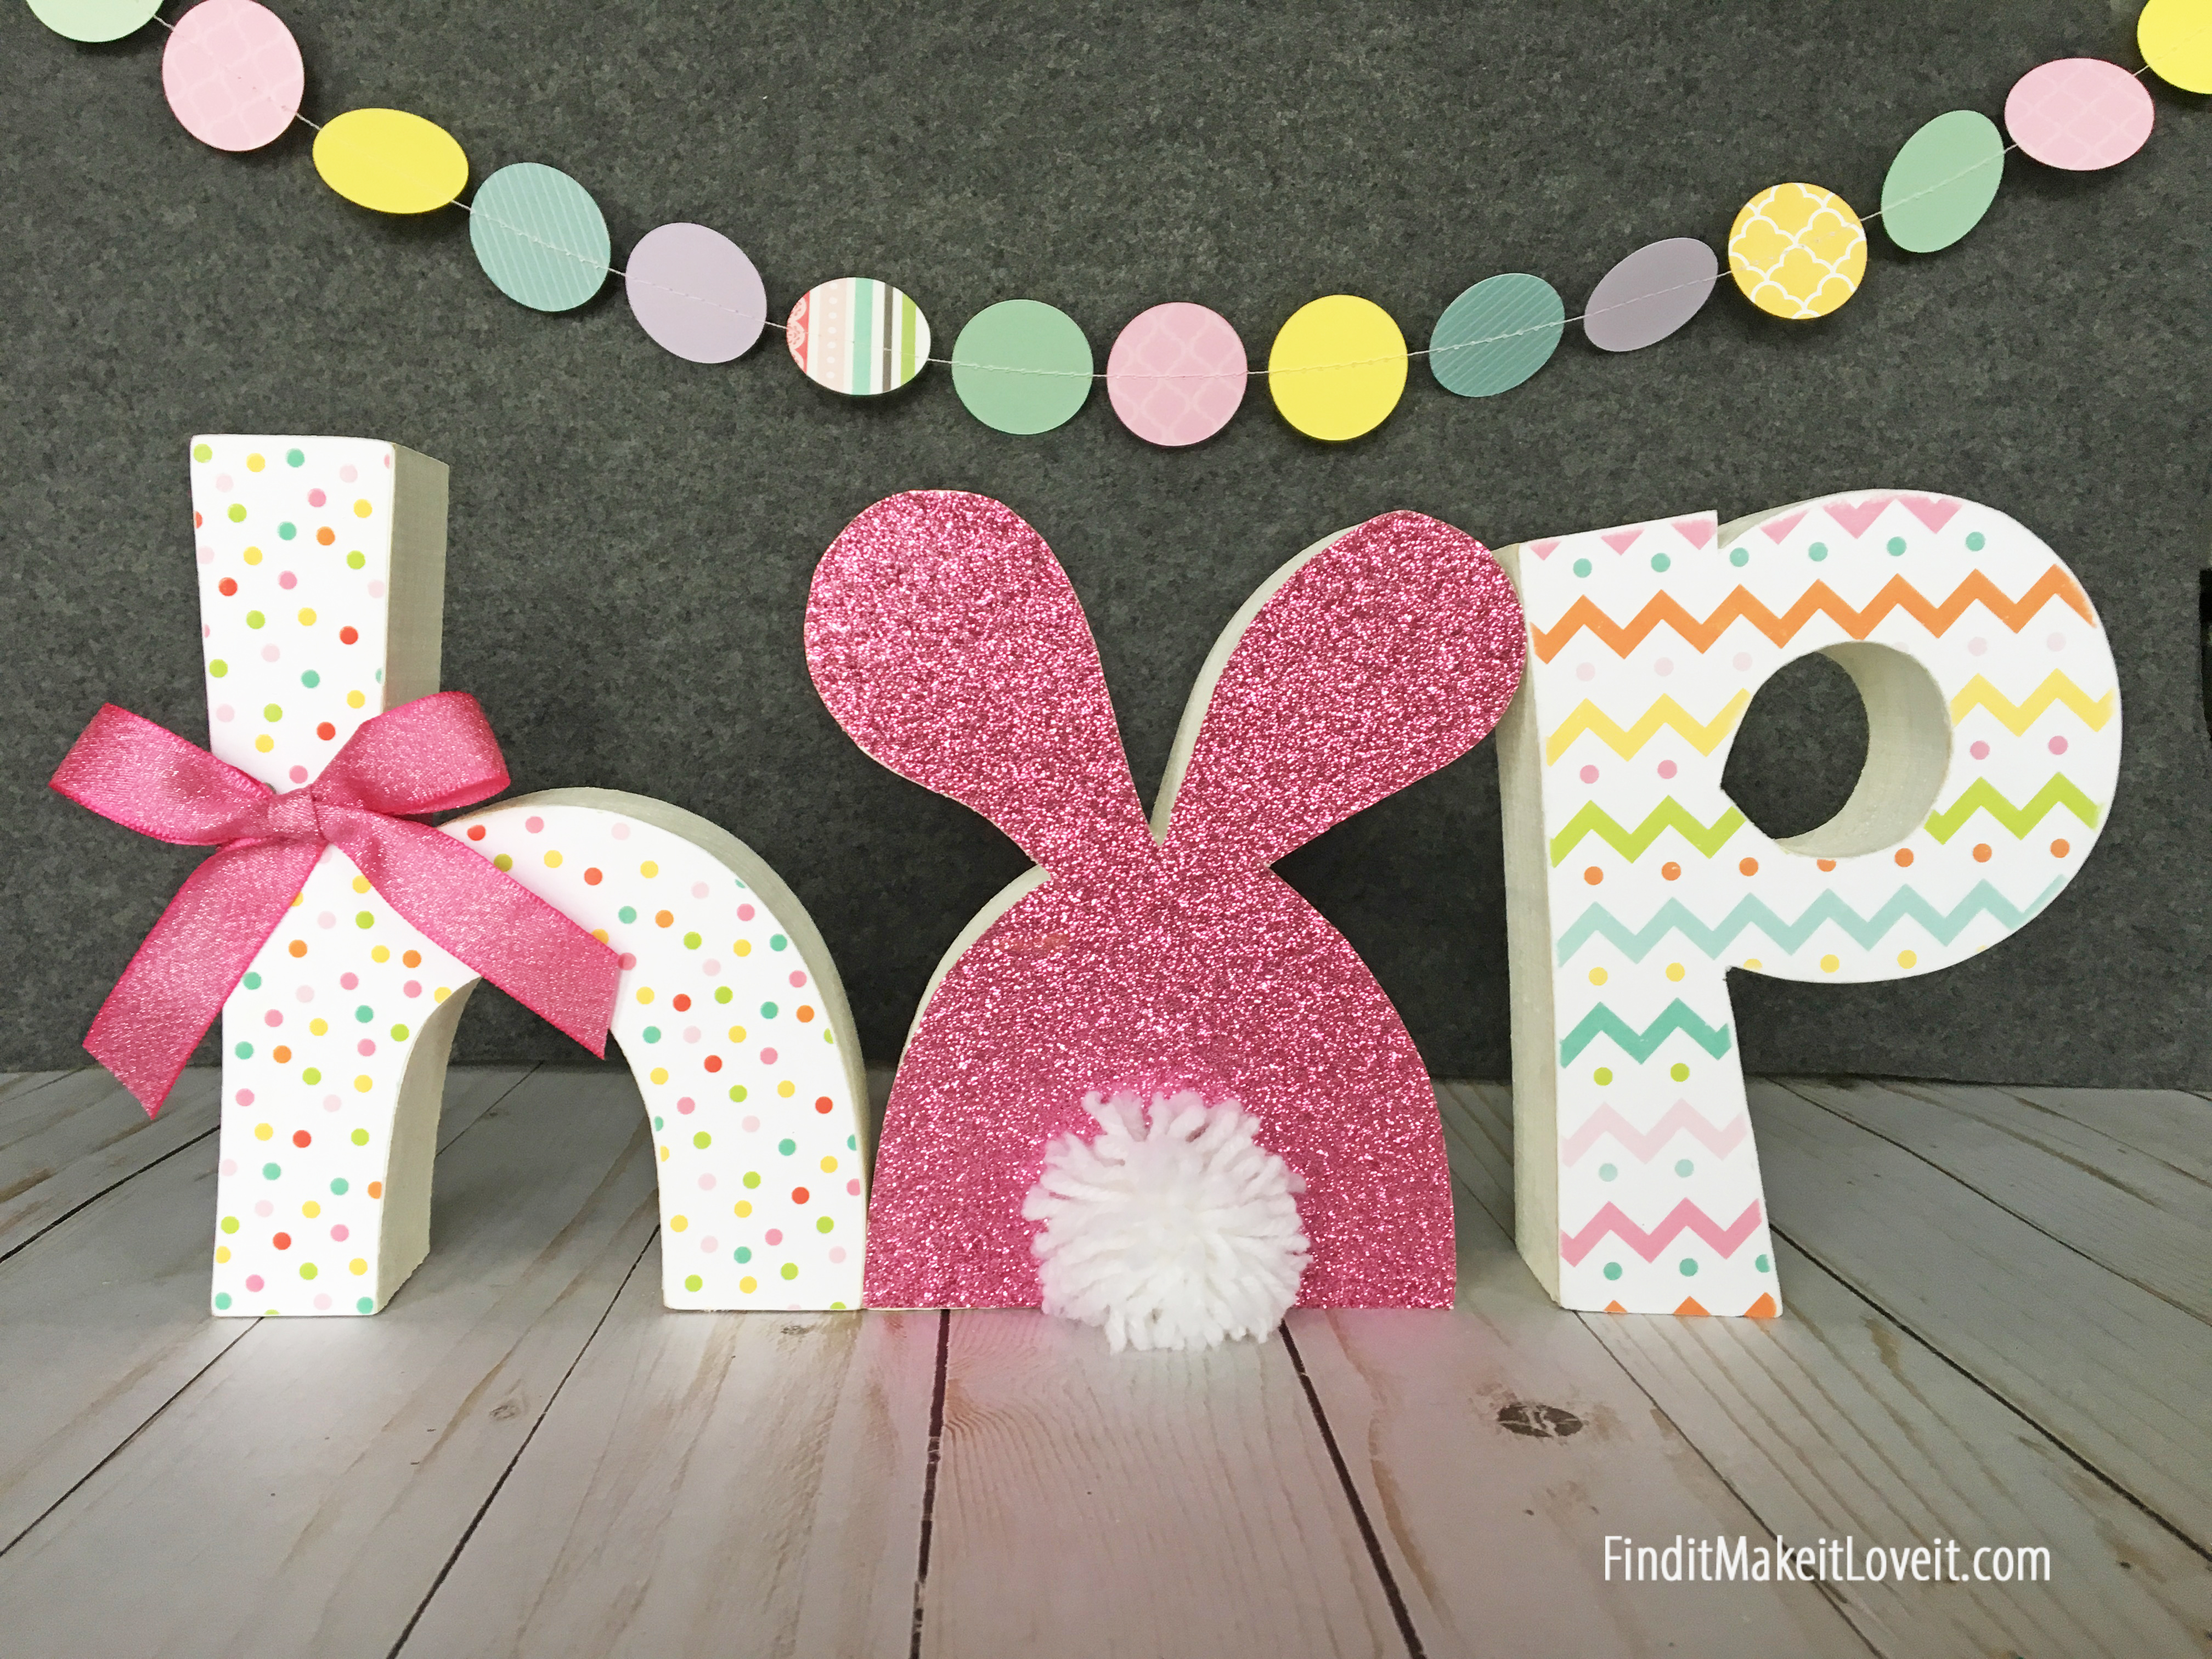 HOP Letter Set for Easter!